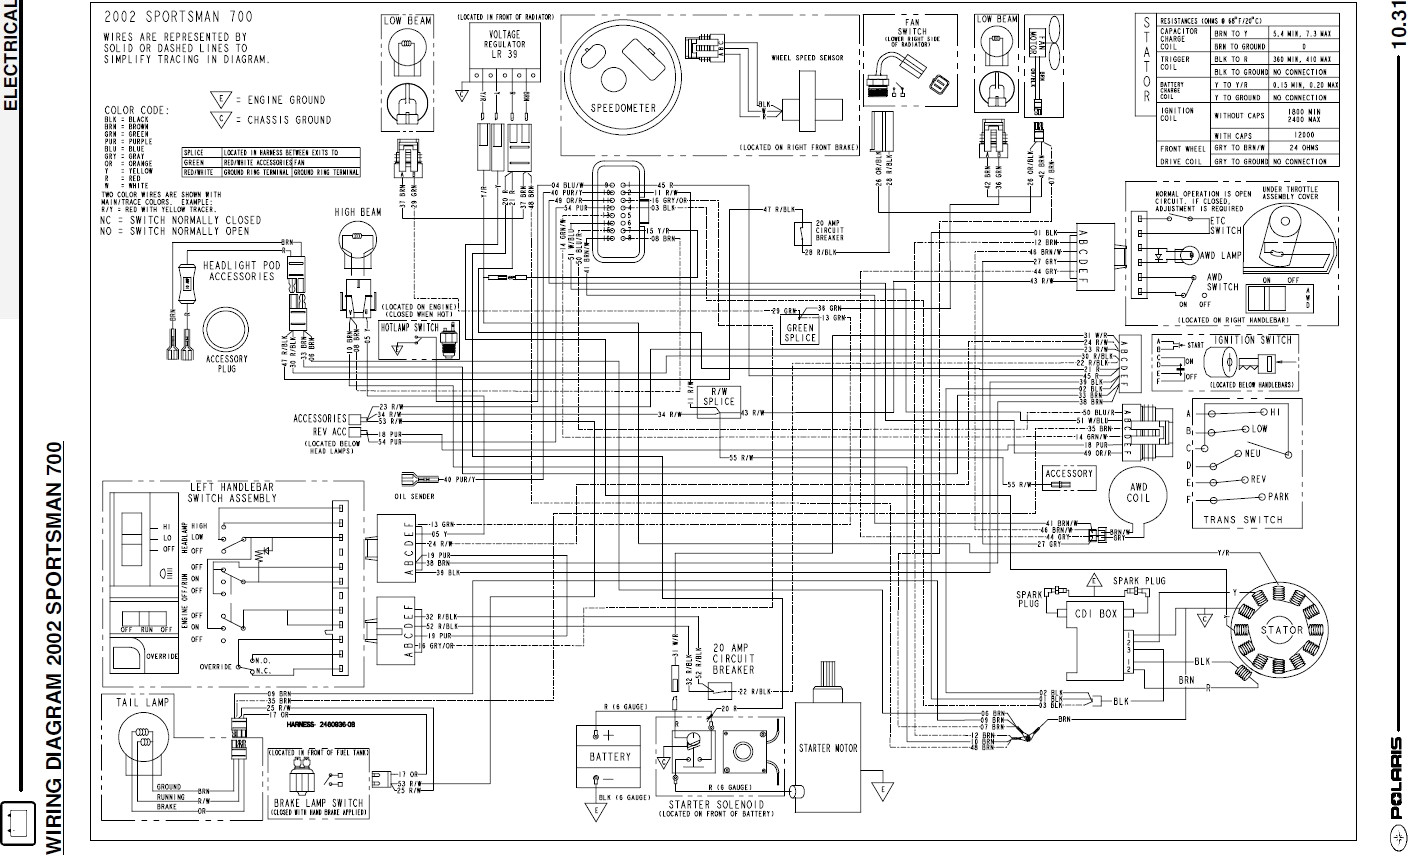 2004 polaris ranger wiring diagram pdf expert schematics diagram rh atcobennettrecoveries com 2004 polaris sportsman 400 electrical diagram 2004 polaris sportsman 400 electrical diagram